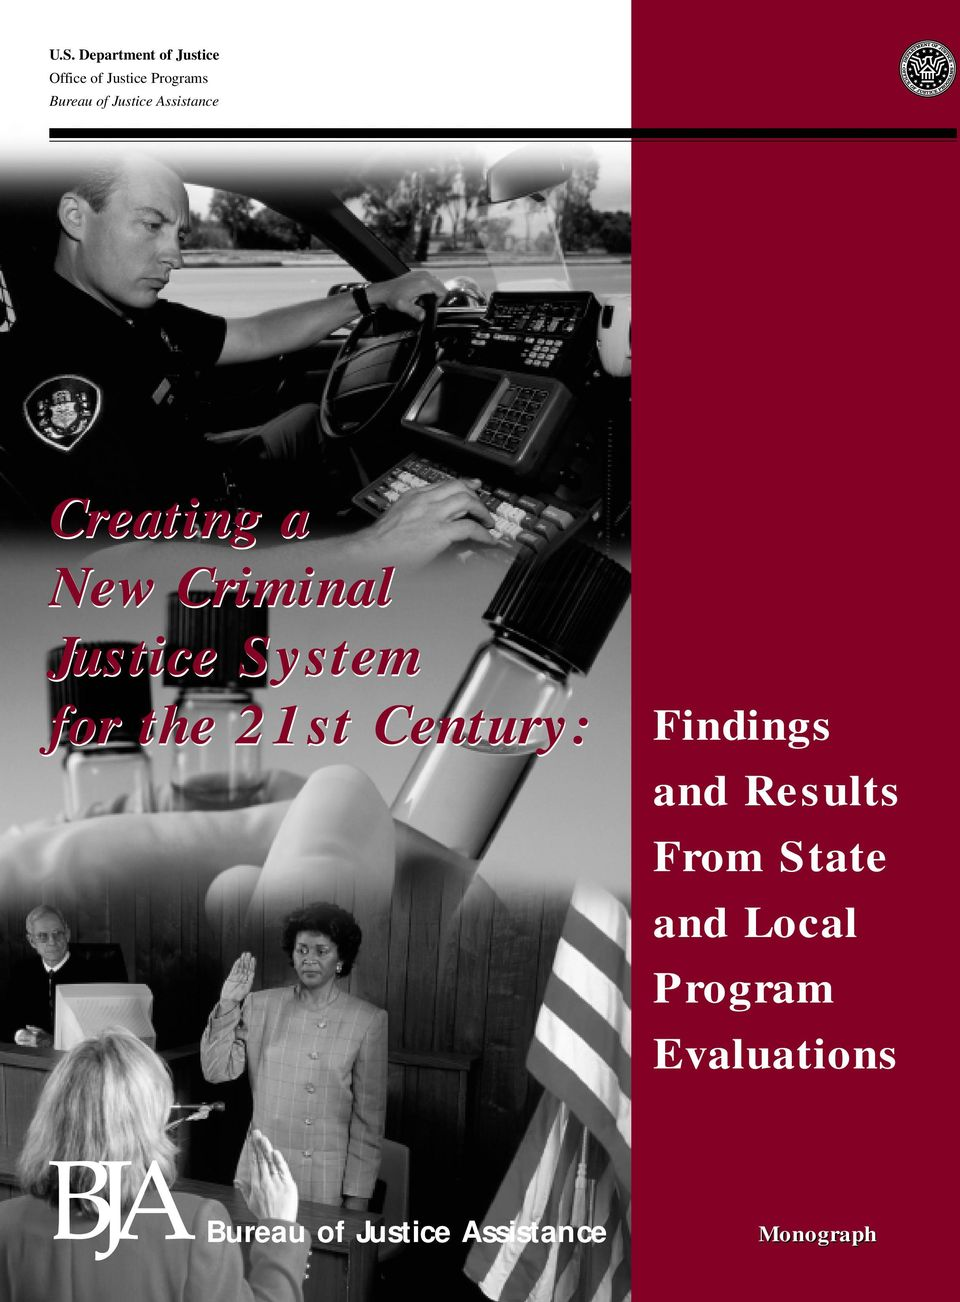 for the 21st Century: Findings and Results From State and